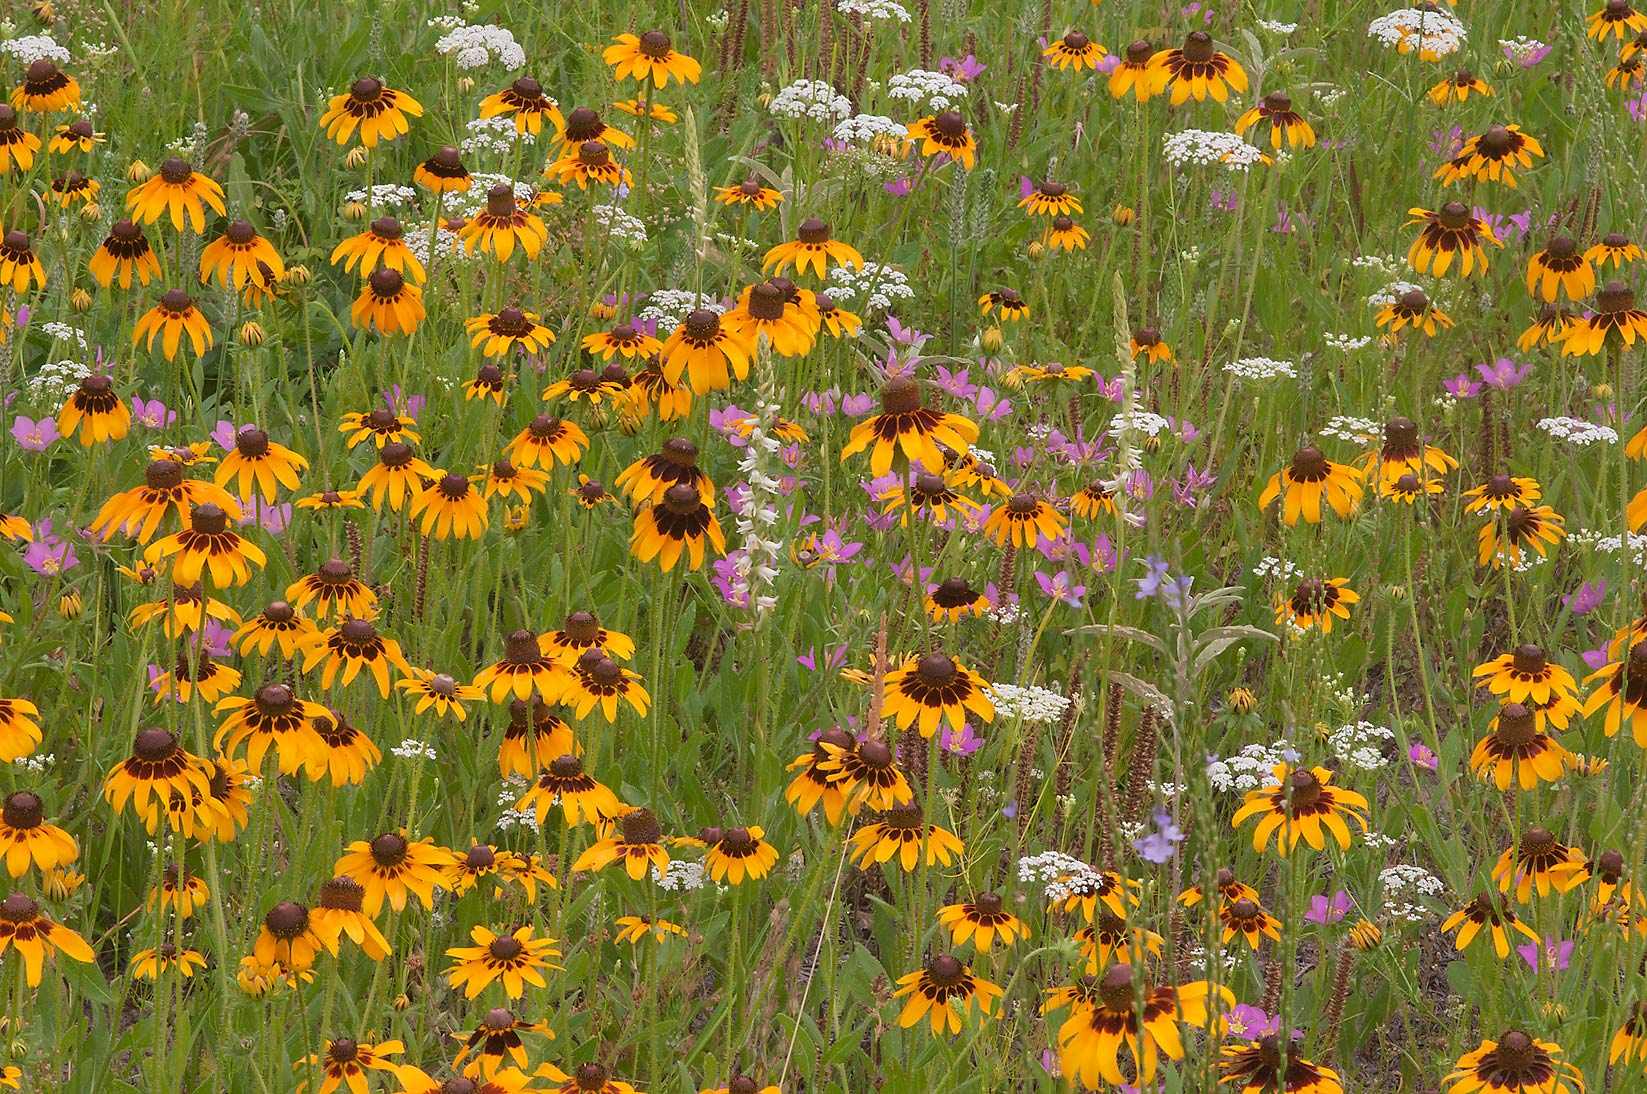 Field of various flowers near equestrian entrance...Creek Park. College Station, Texas